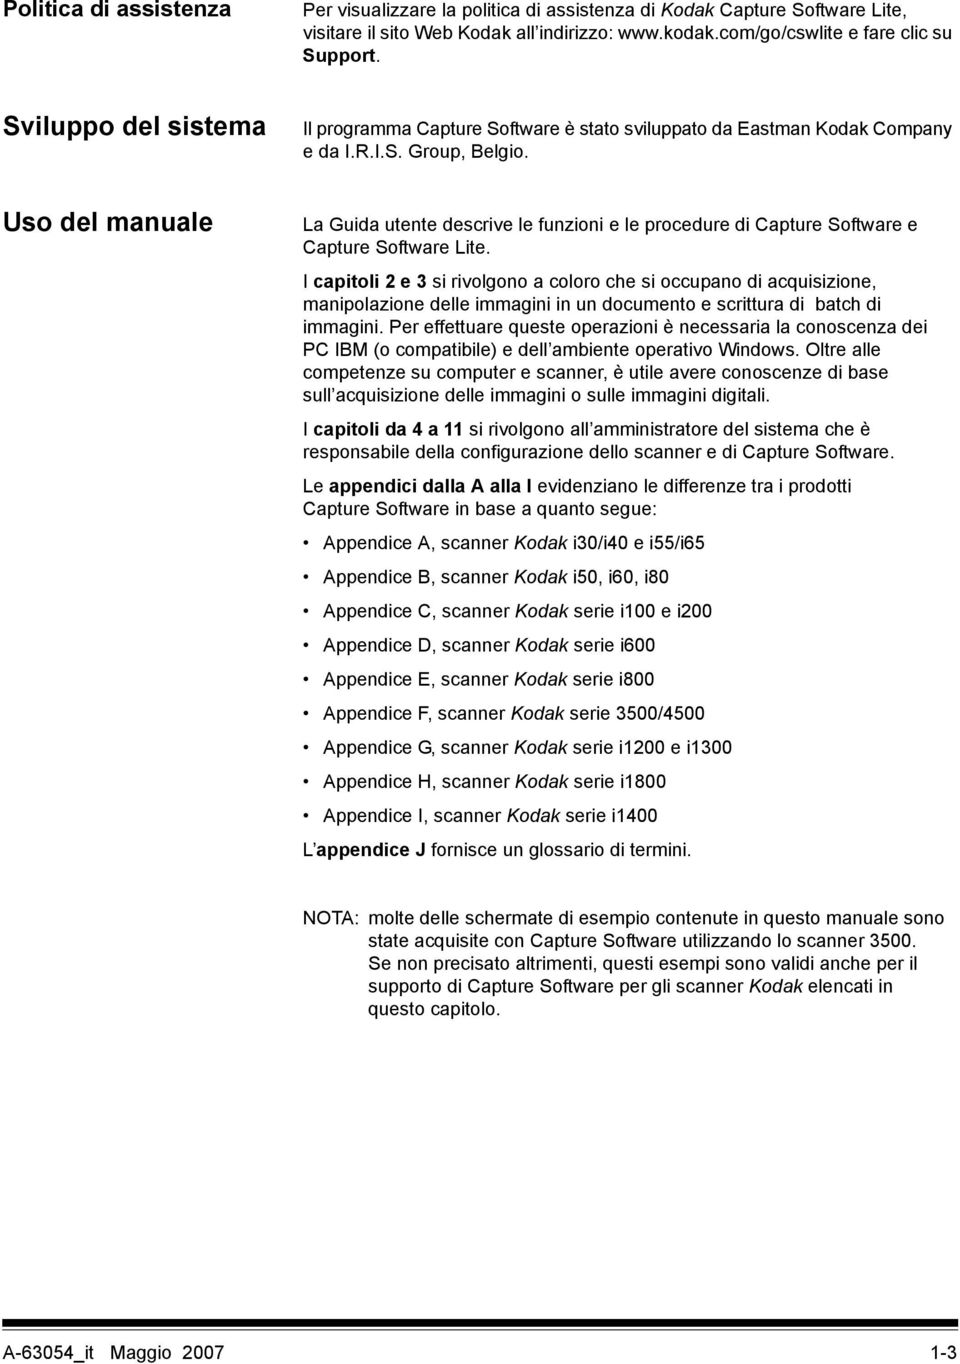 Uso del manuale La Guida utente descrive le funzioni e le procedure di Capture Software e Capture Software Lite.